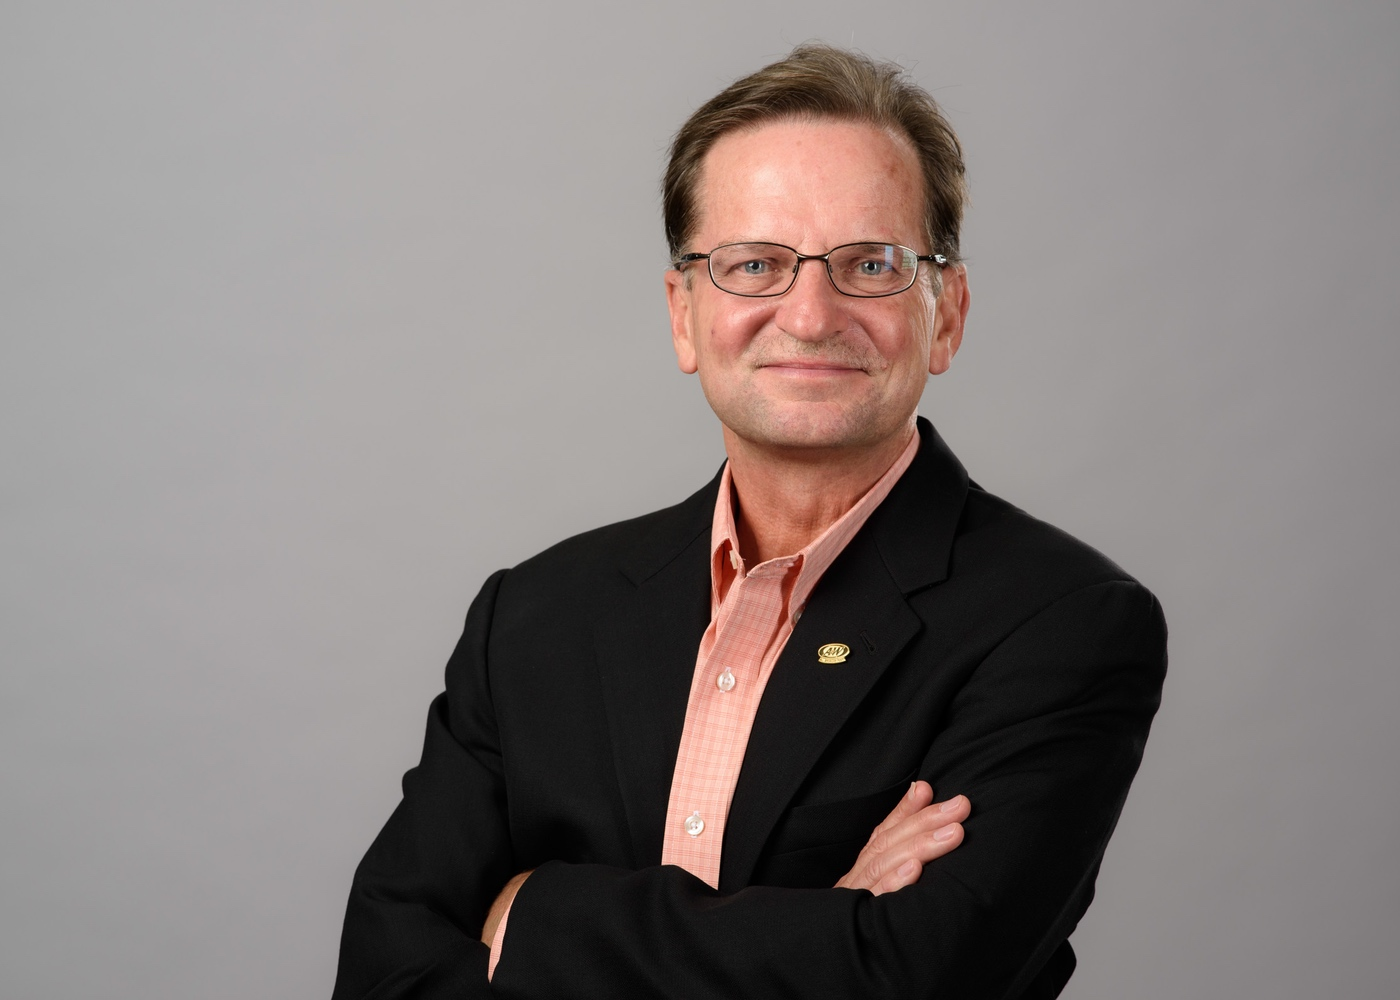 Photo of A&W CEO Kevin Bazner